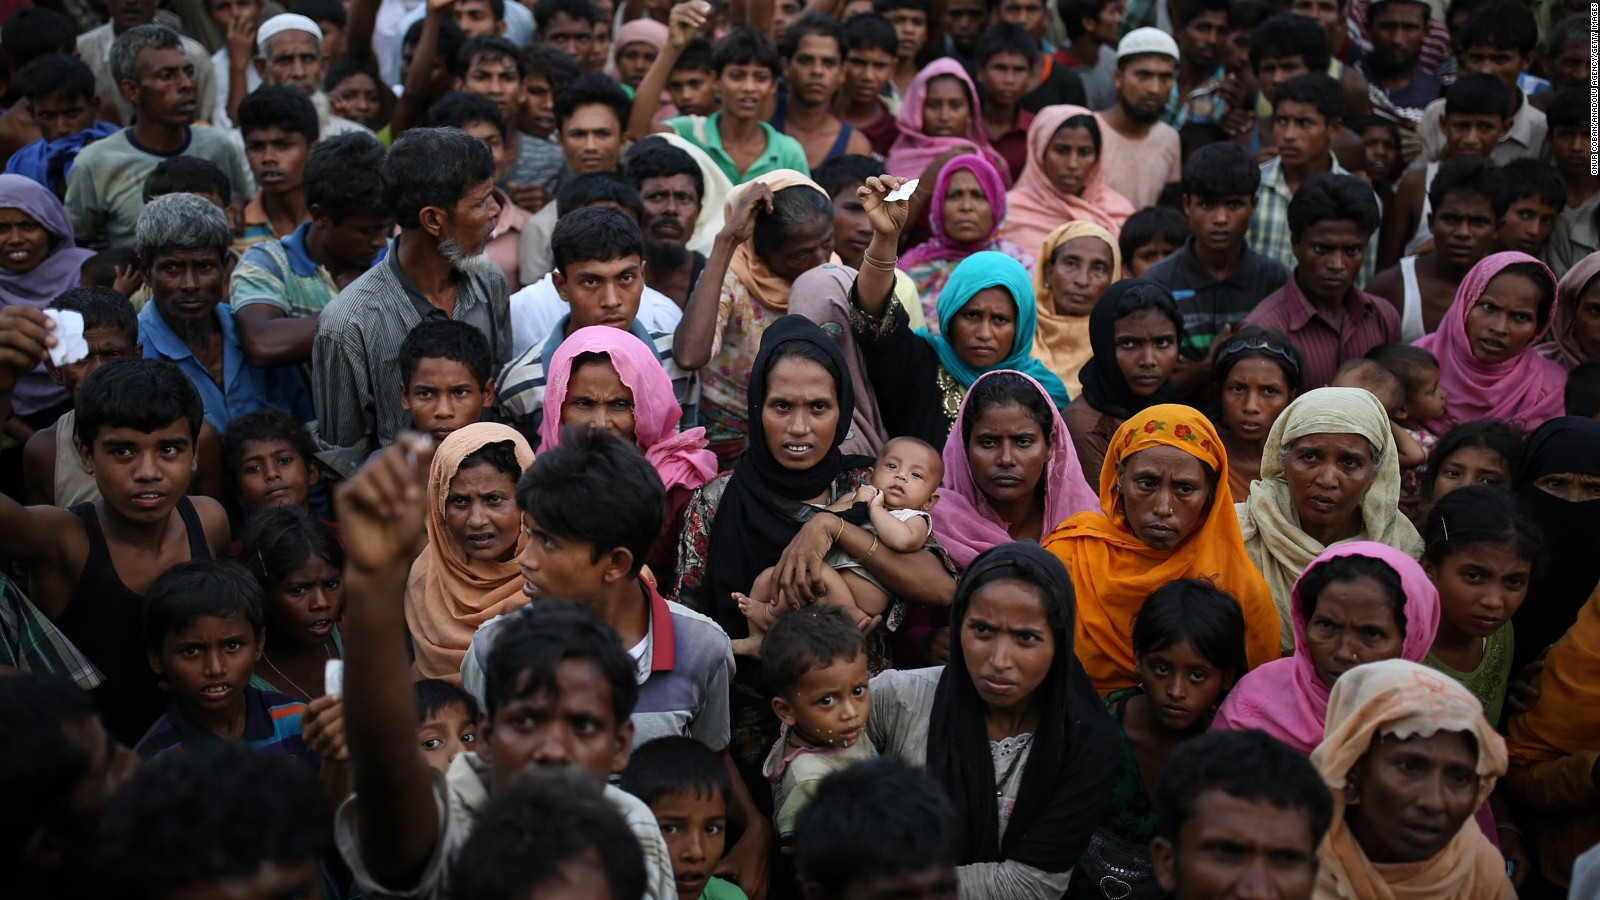 https://cdn.cnn.com/cnnnext/dam/assets/170913162543-01-rohingya-refugees-0909-restricted-full-169.jpg